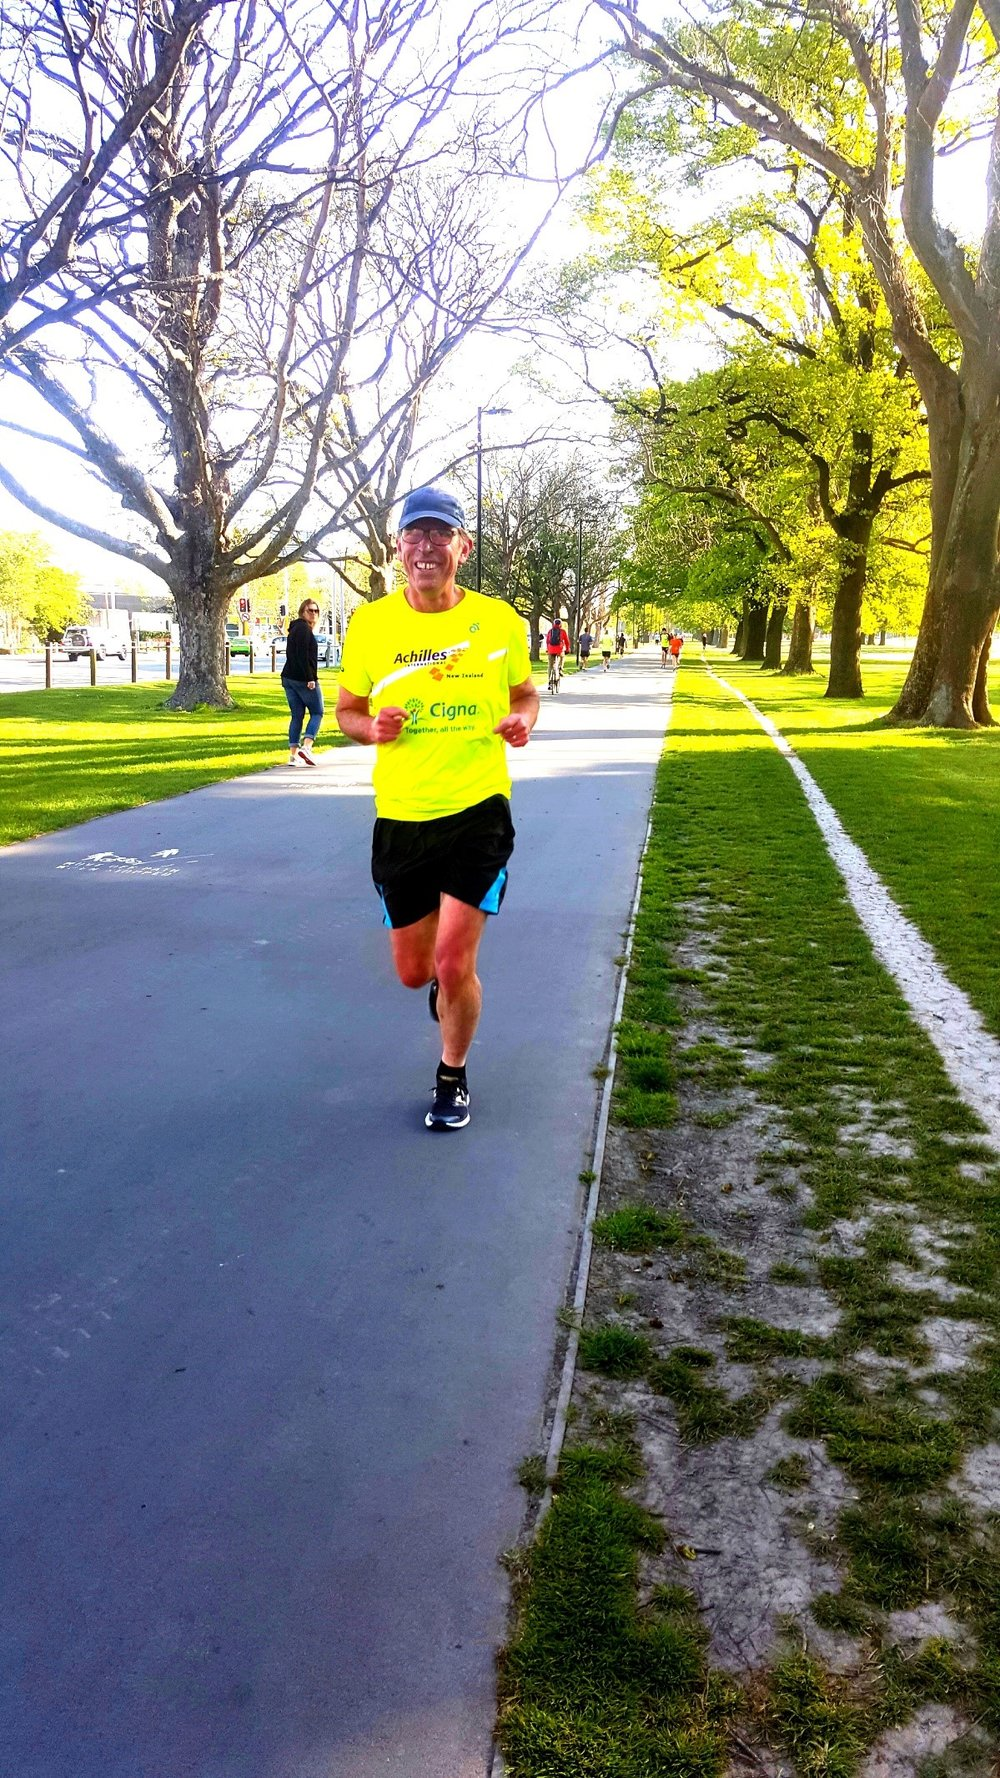 Mike Running down the street in Christchurch.